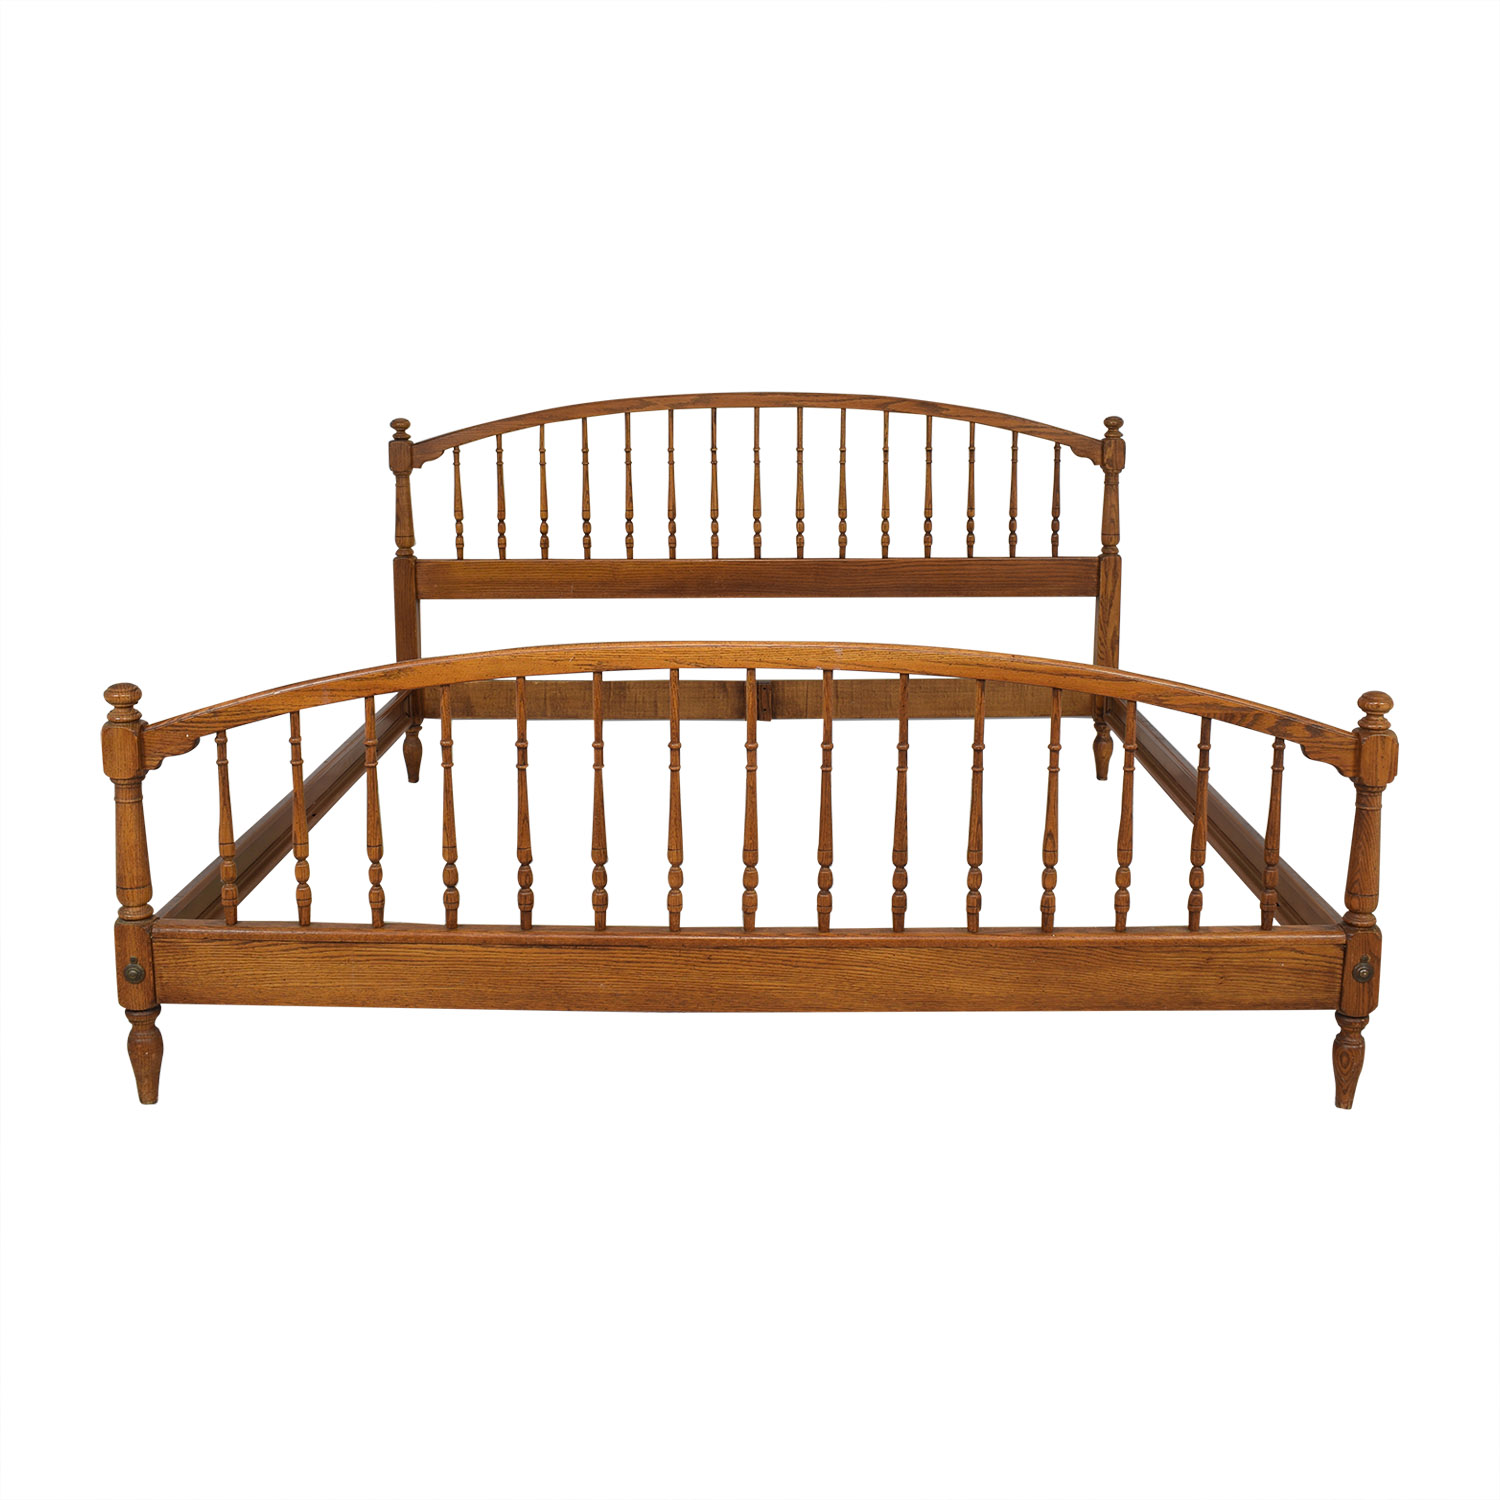 Knob Creek Knob Creek Spindle King Bed Frame discount